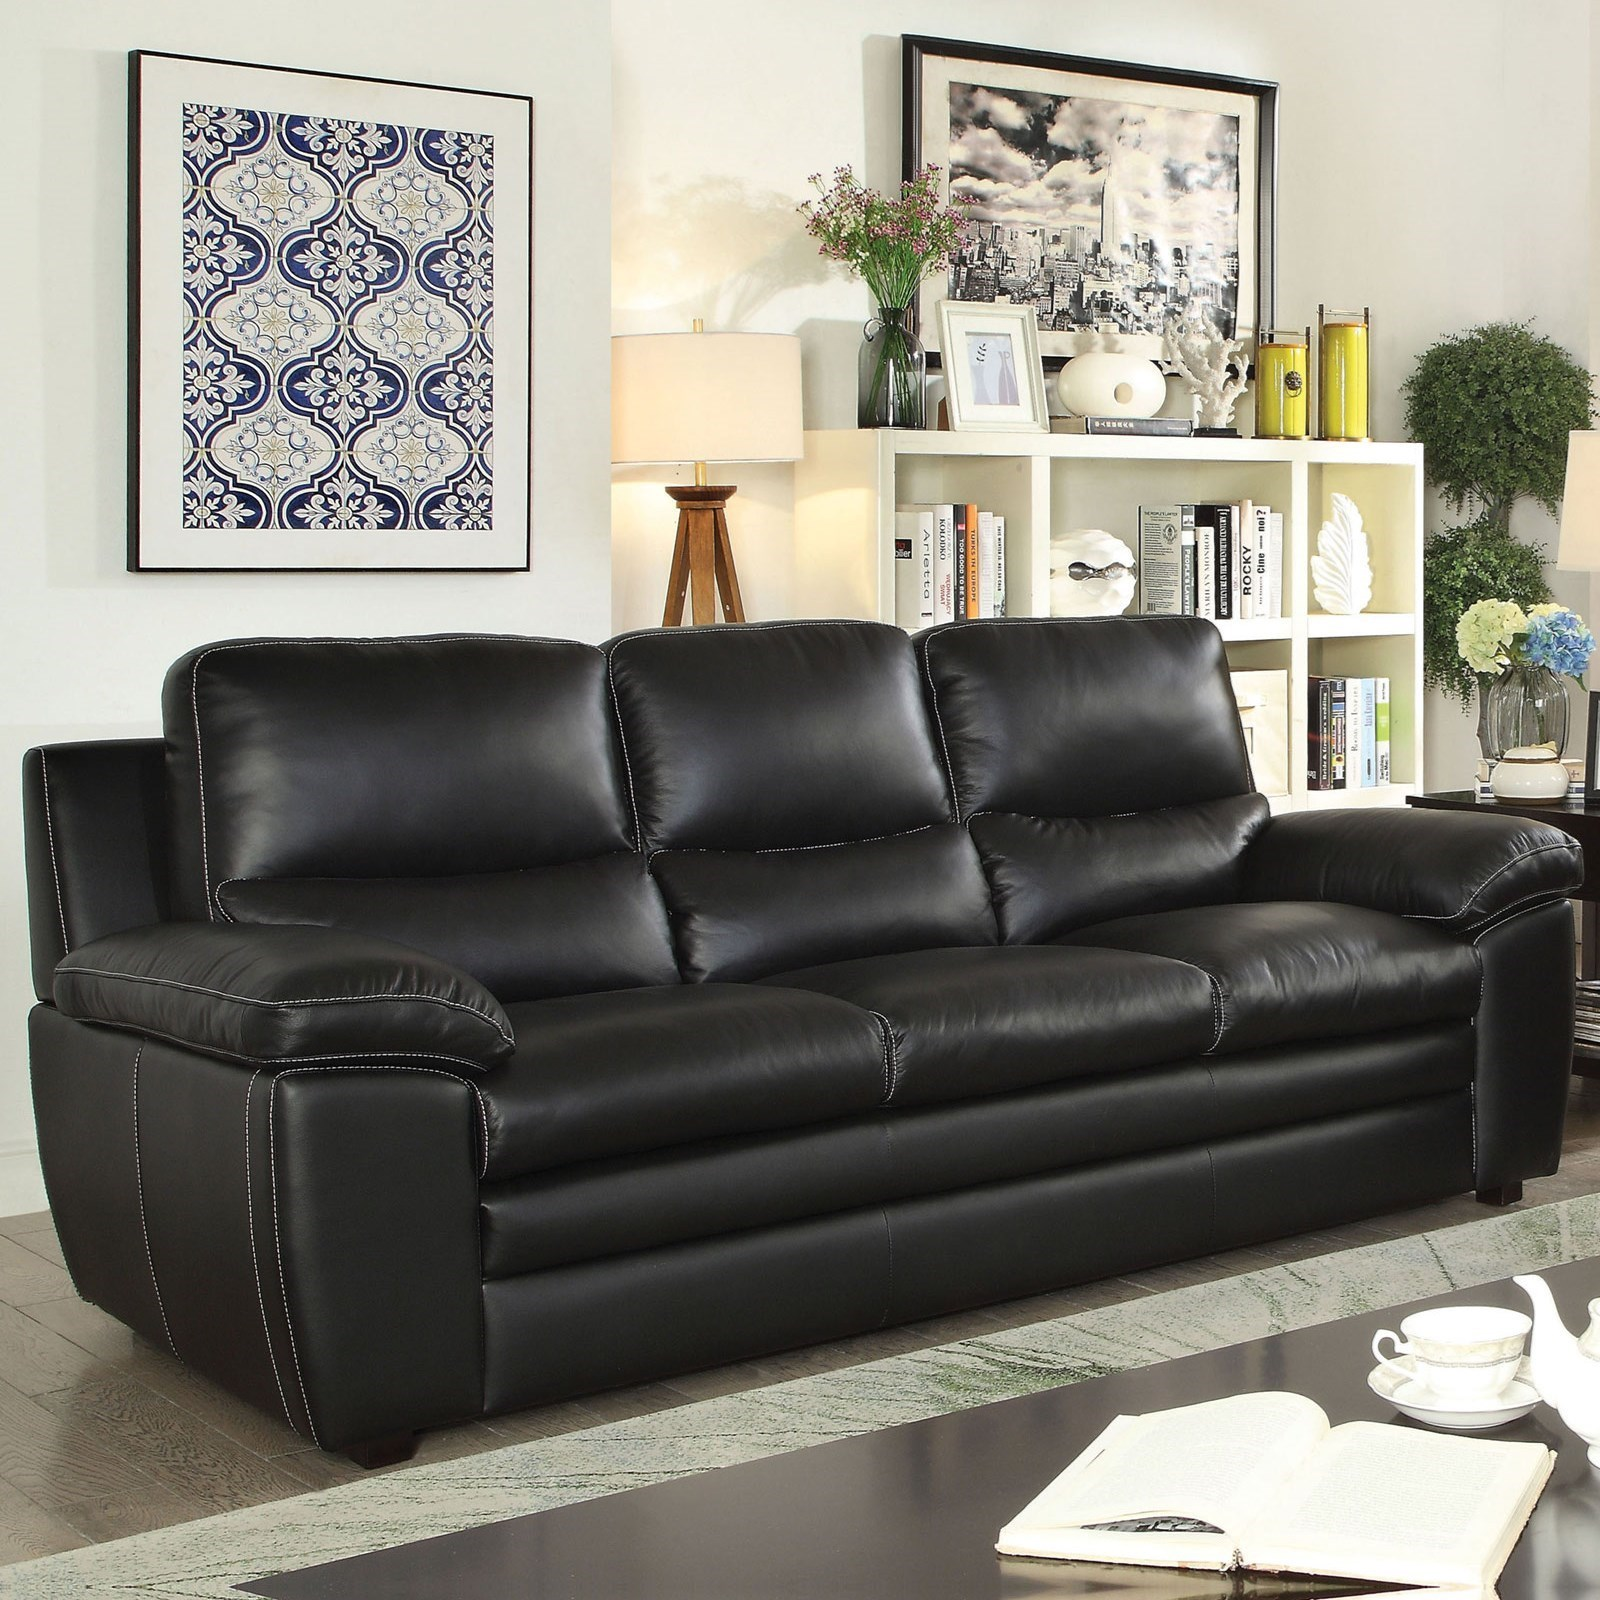 Furniture of America Mirielle Casual Leather Match Sofa | Rooms for ...